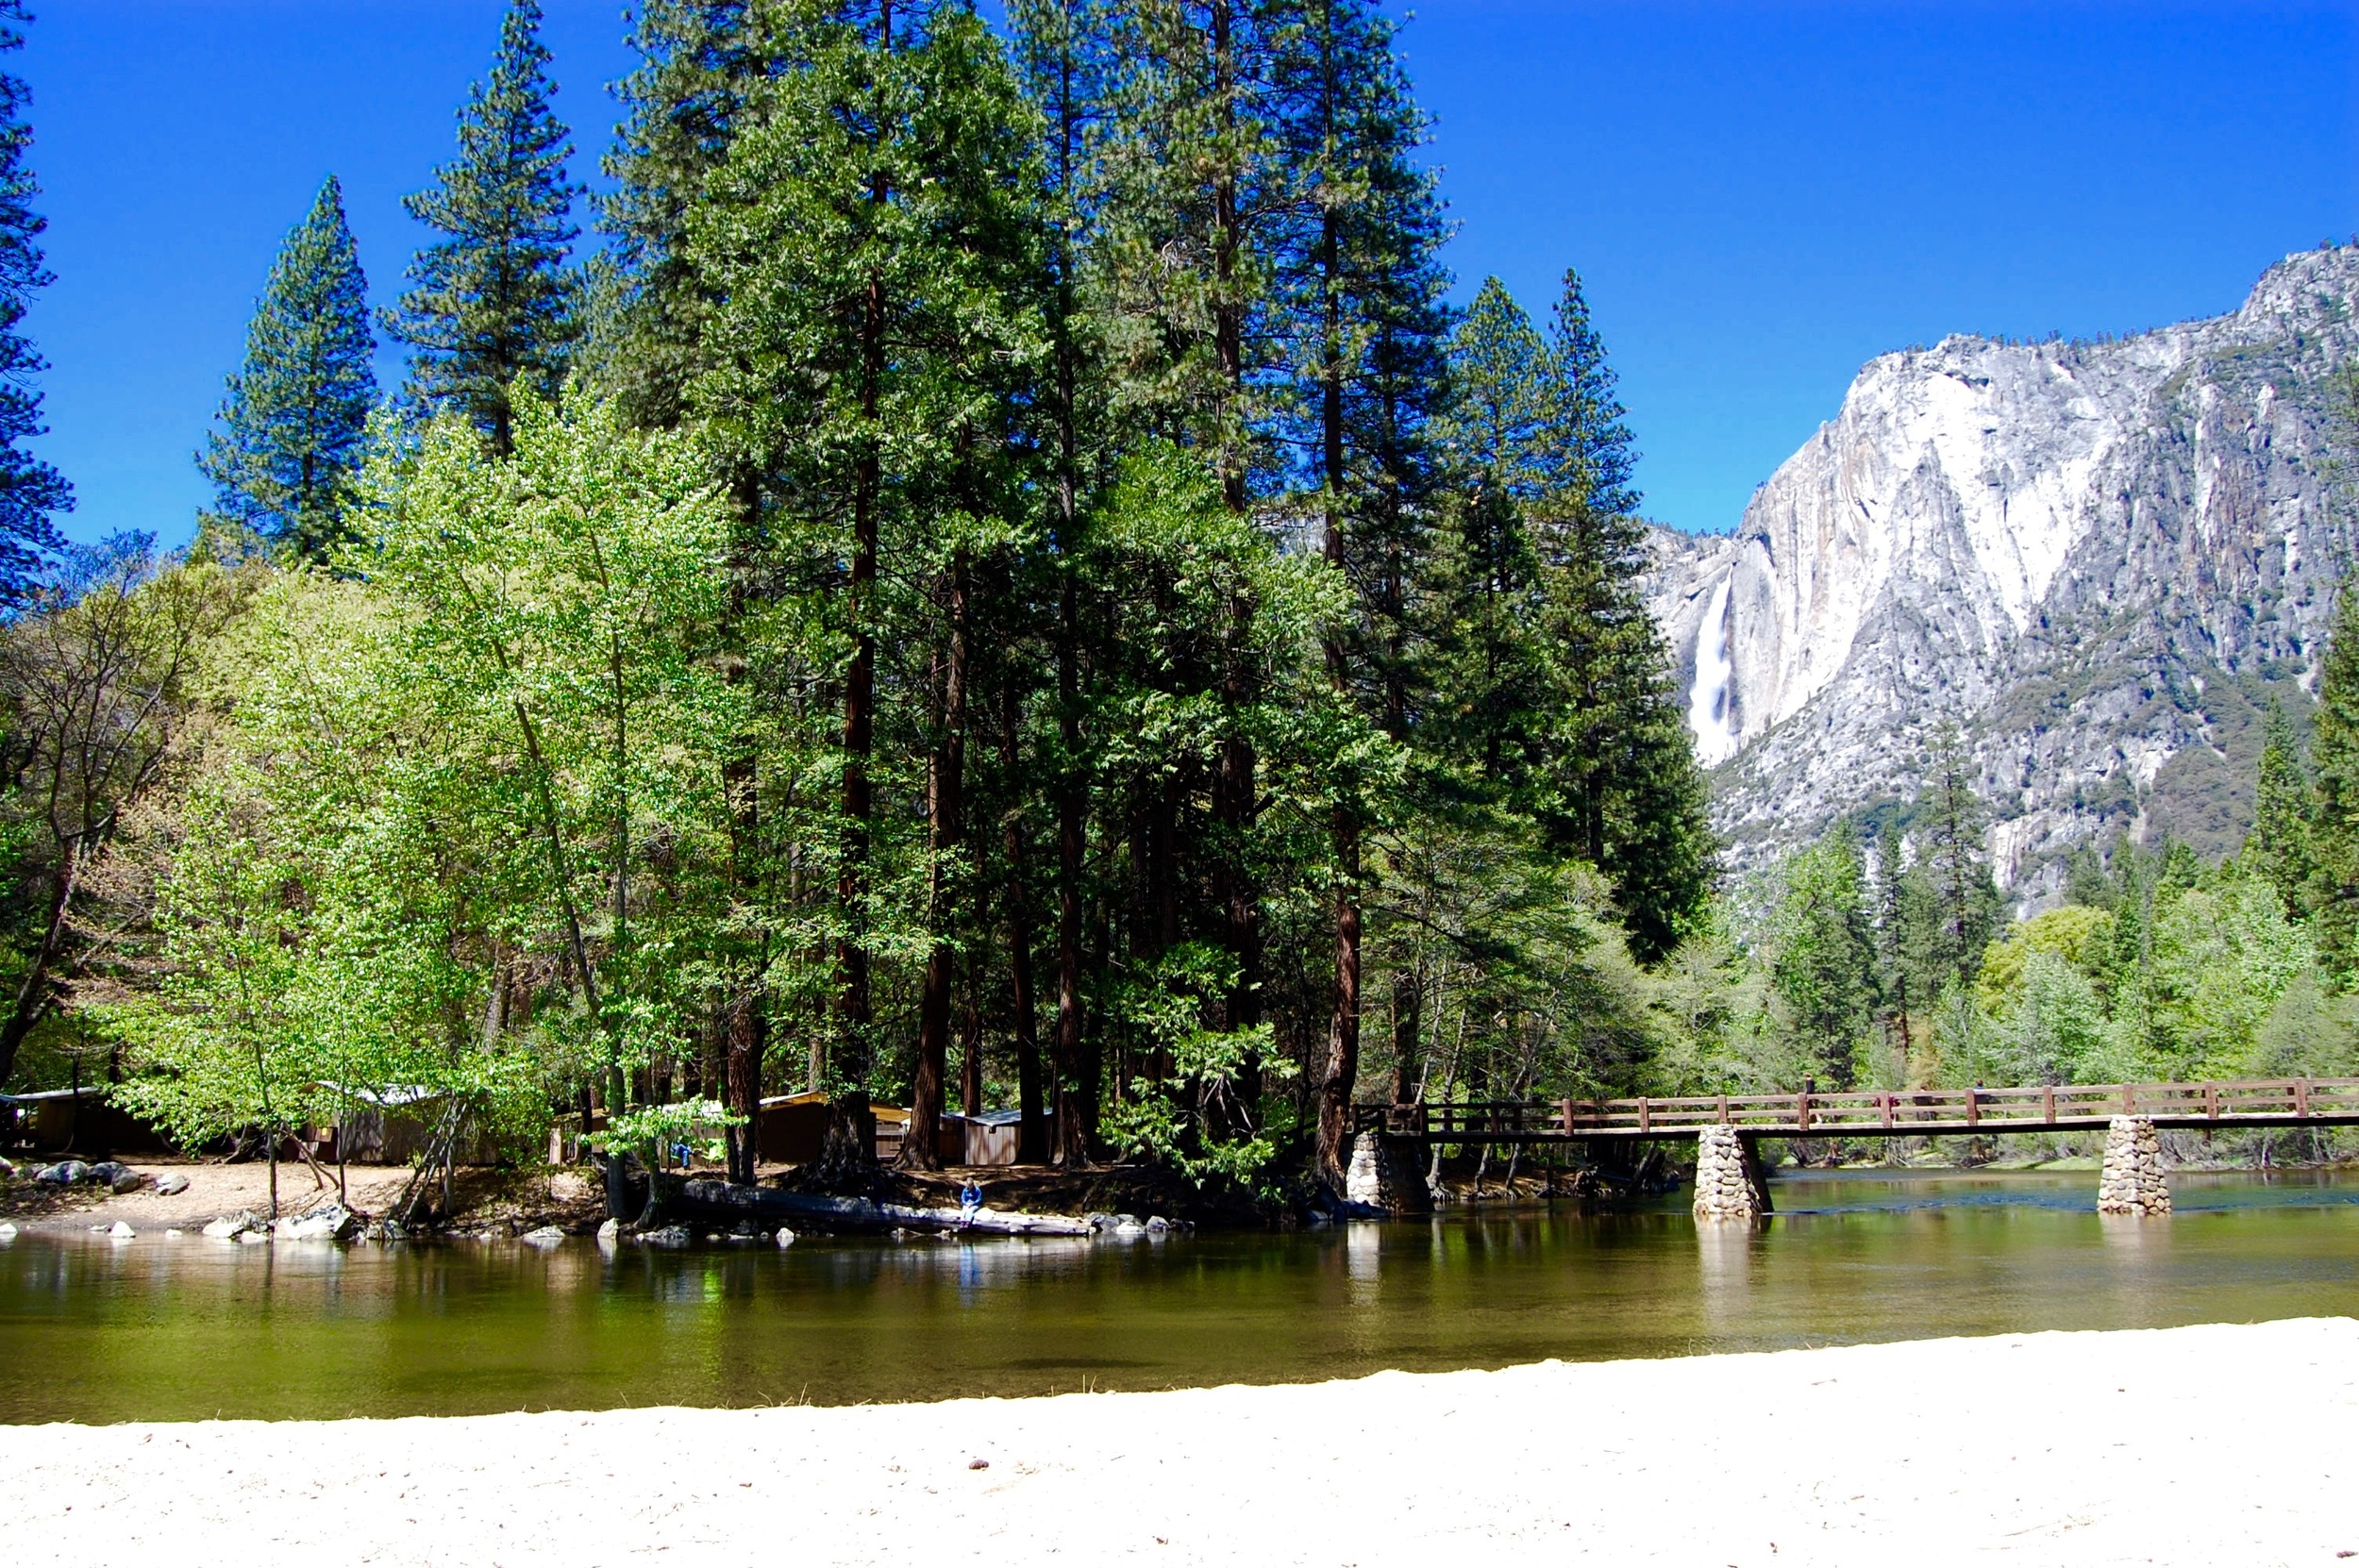 Yosemite National Park, Housekeeping Camp and Yosemite Falls